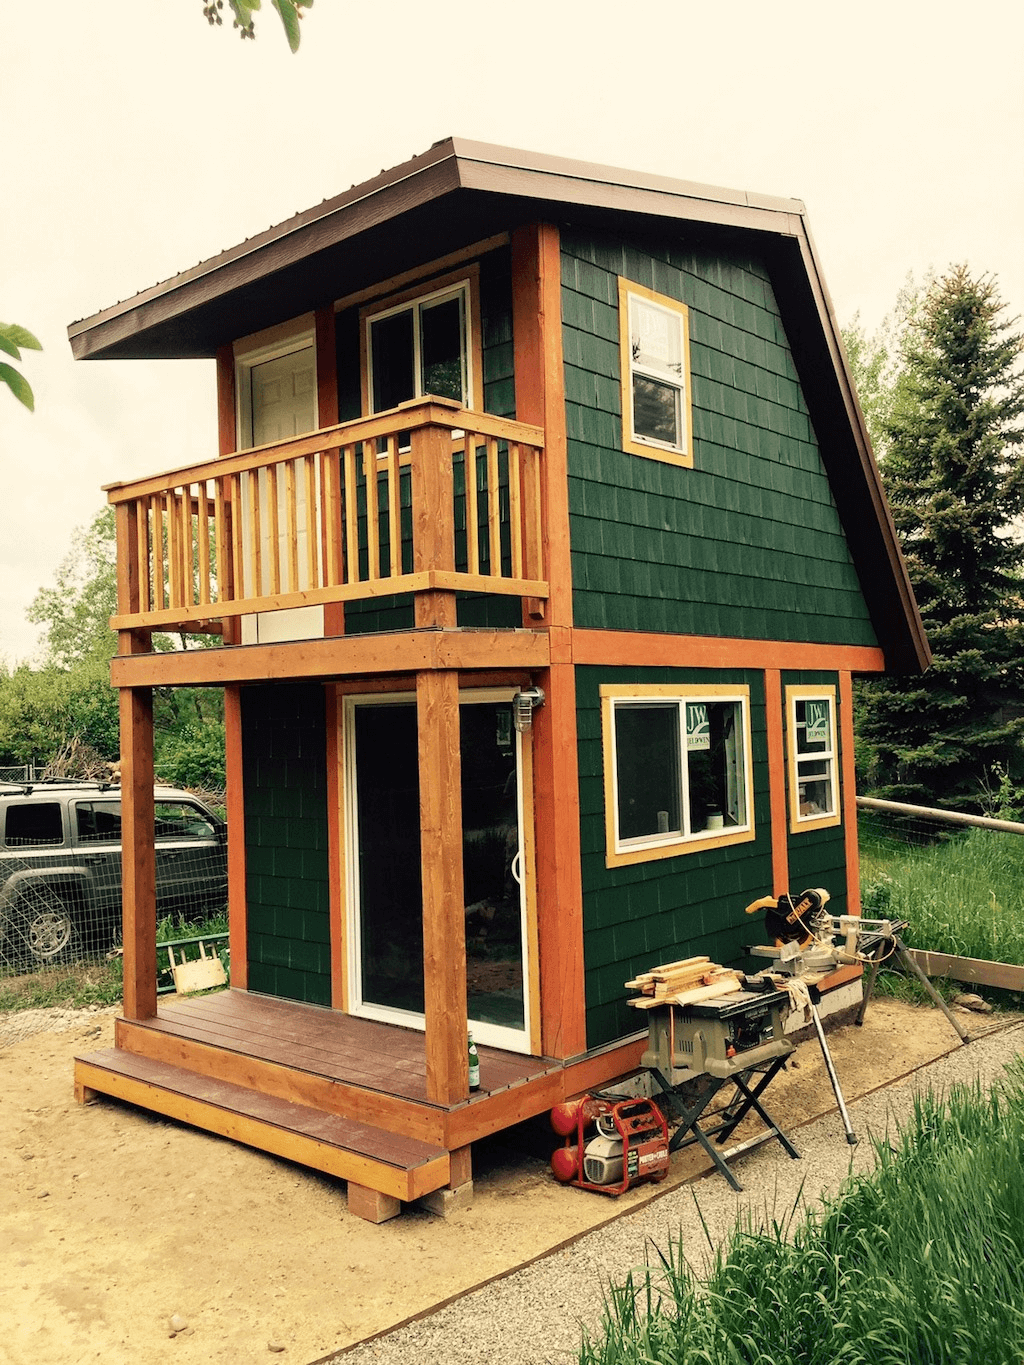 Jackson hole story tiny house wooden materials and nice front views porch design also rh pinterest